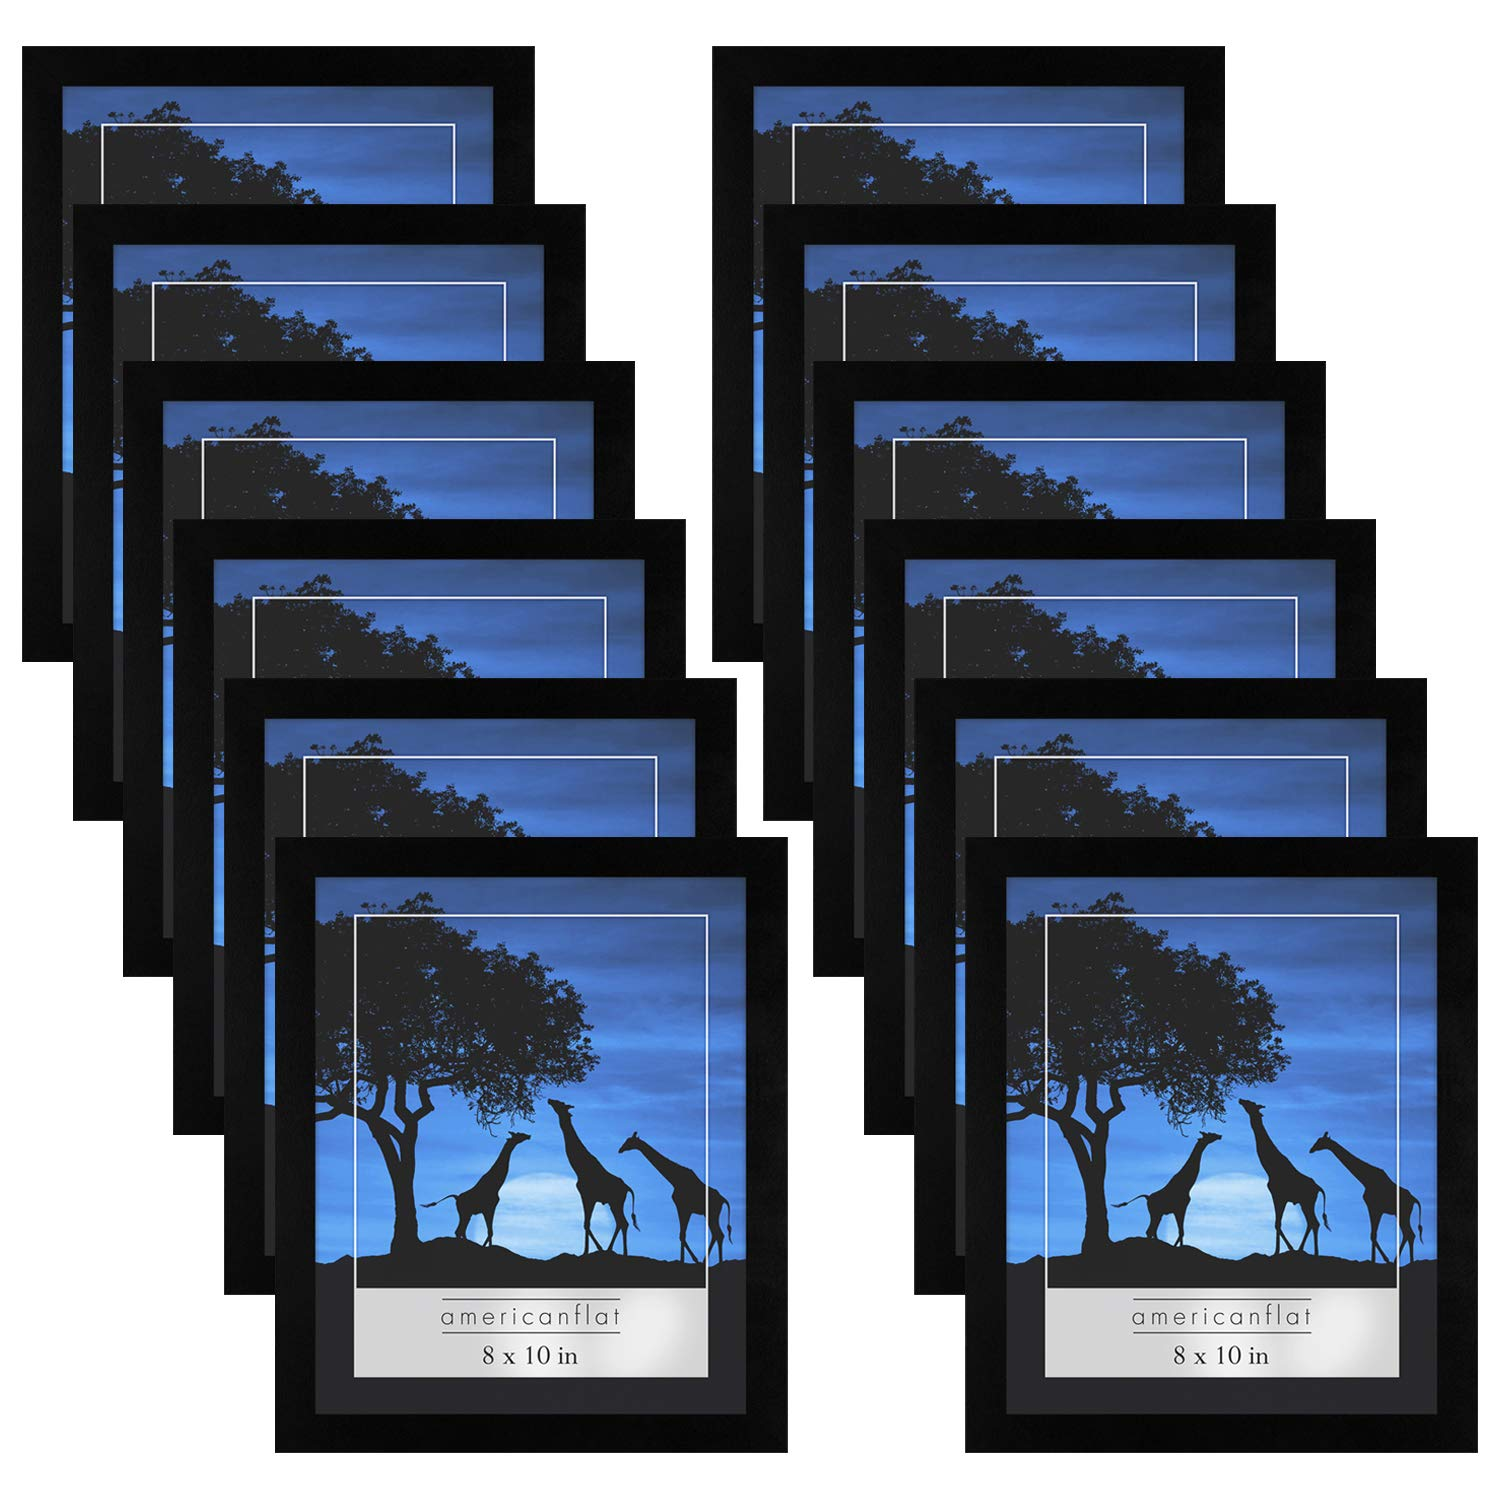 Americanflat 12 Pack - 8x10 Picture Frames - Display Pictures 8x10 Inches - Easel Backs - Built-in Hangers - Plexiglass Fronts by Americanflat